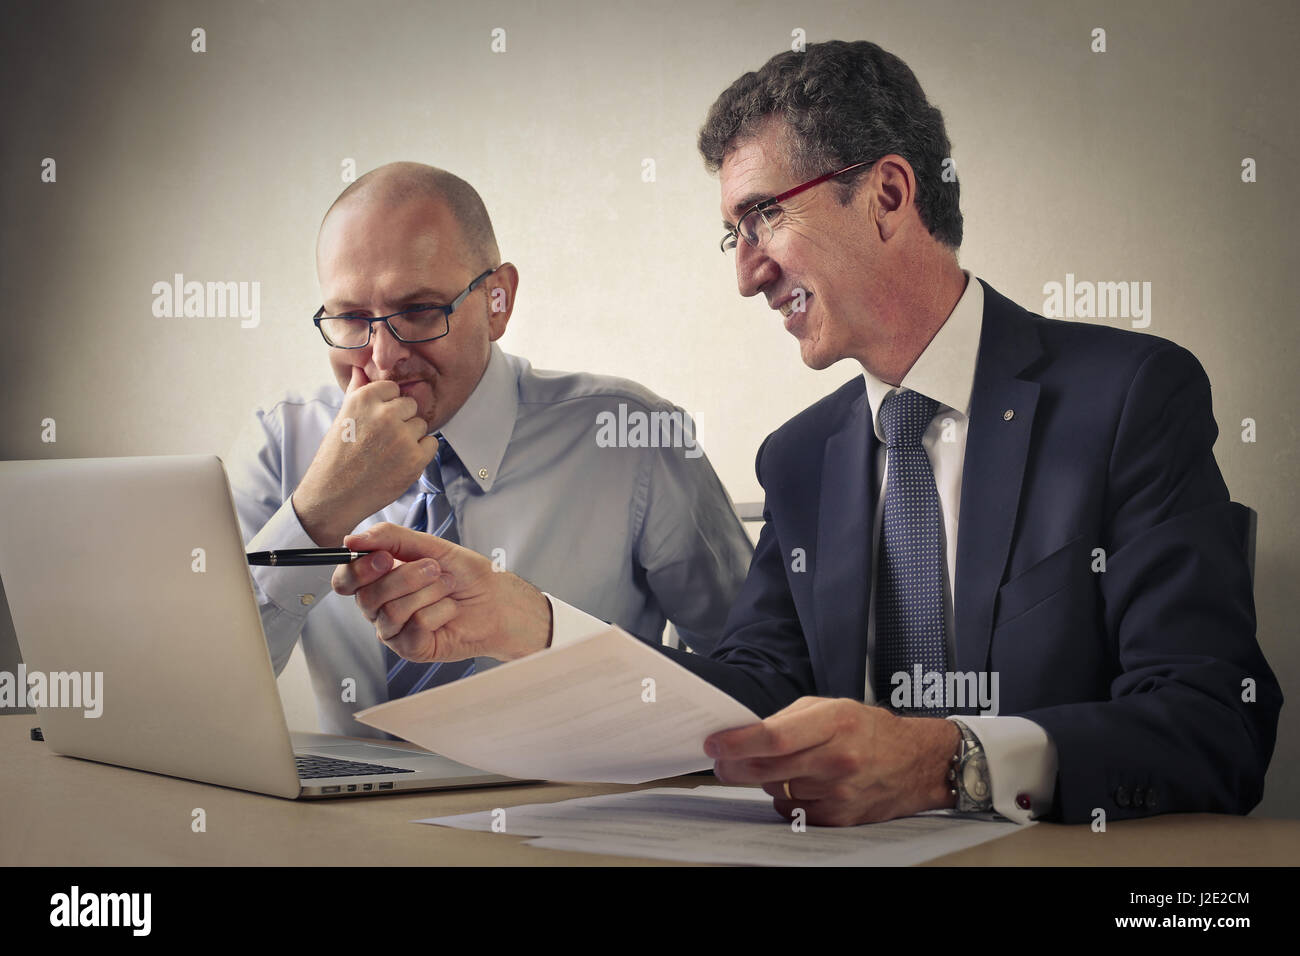 2 businessmen discussing and looking at tablet - Stock Image